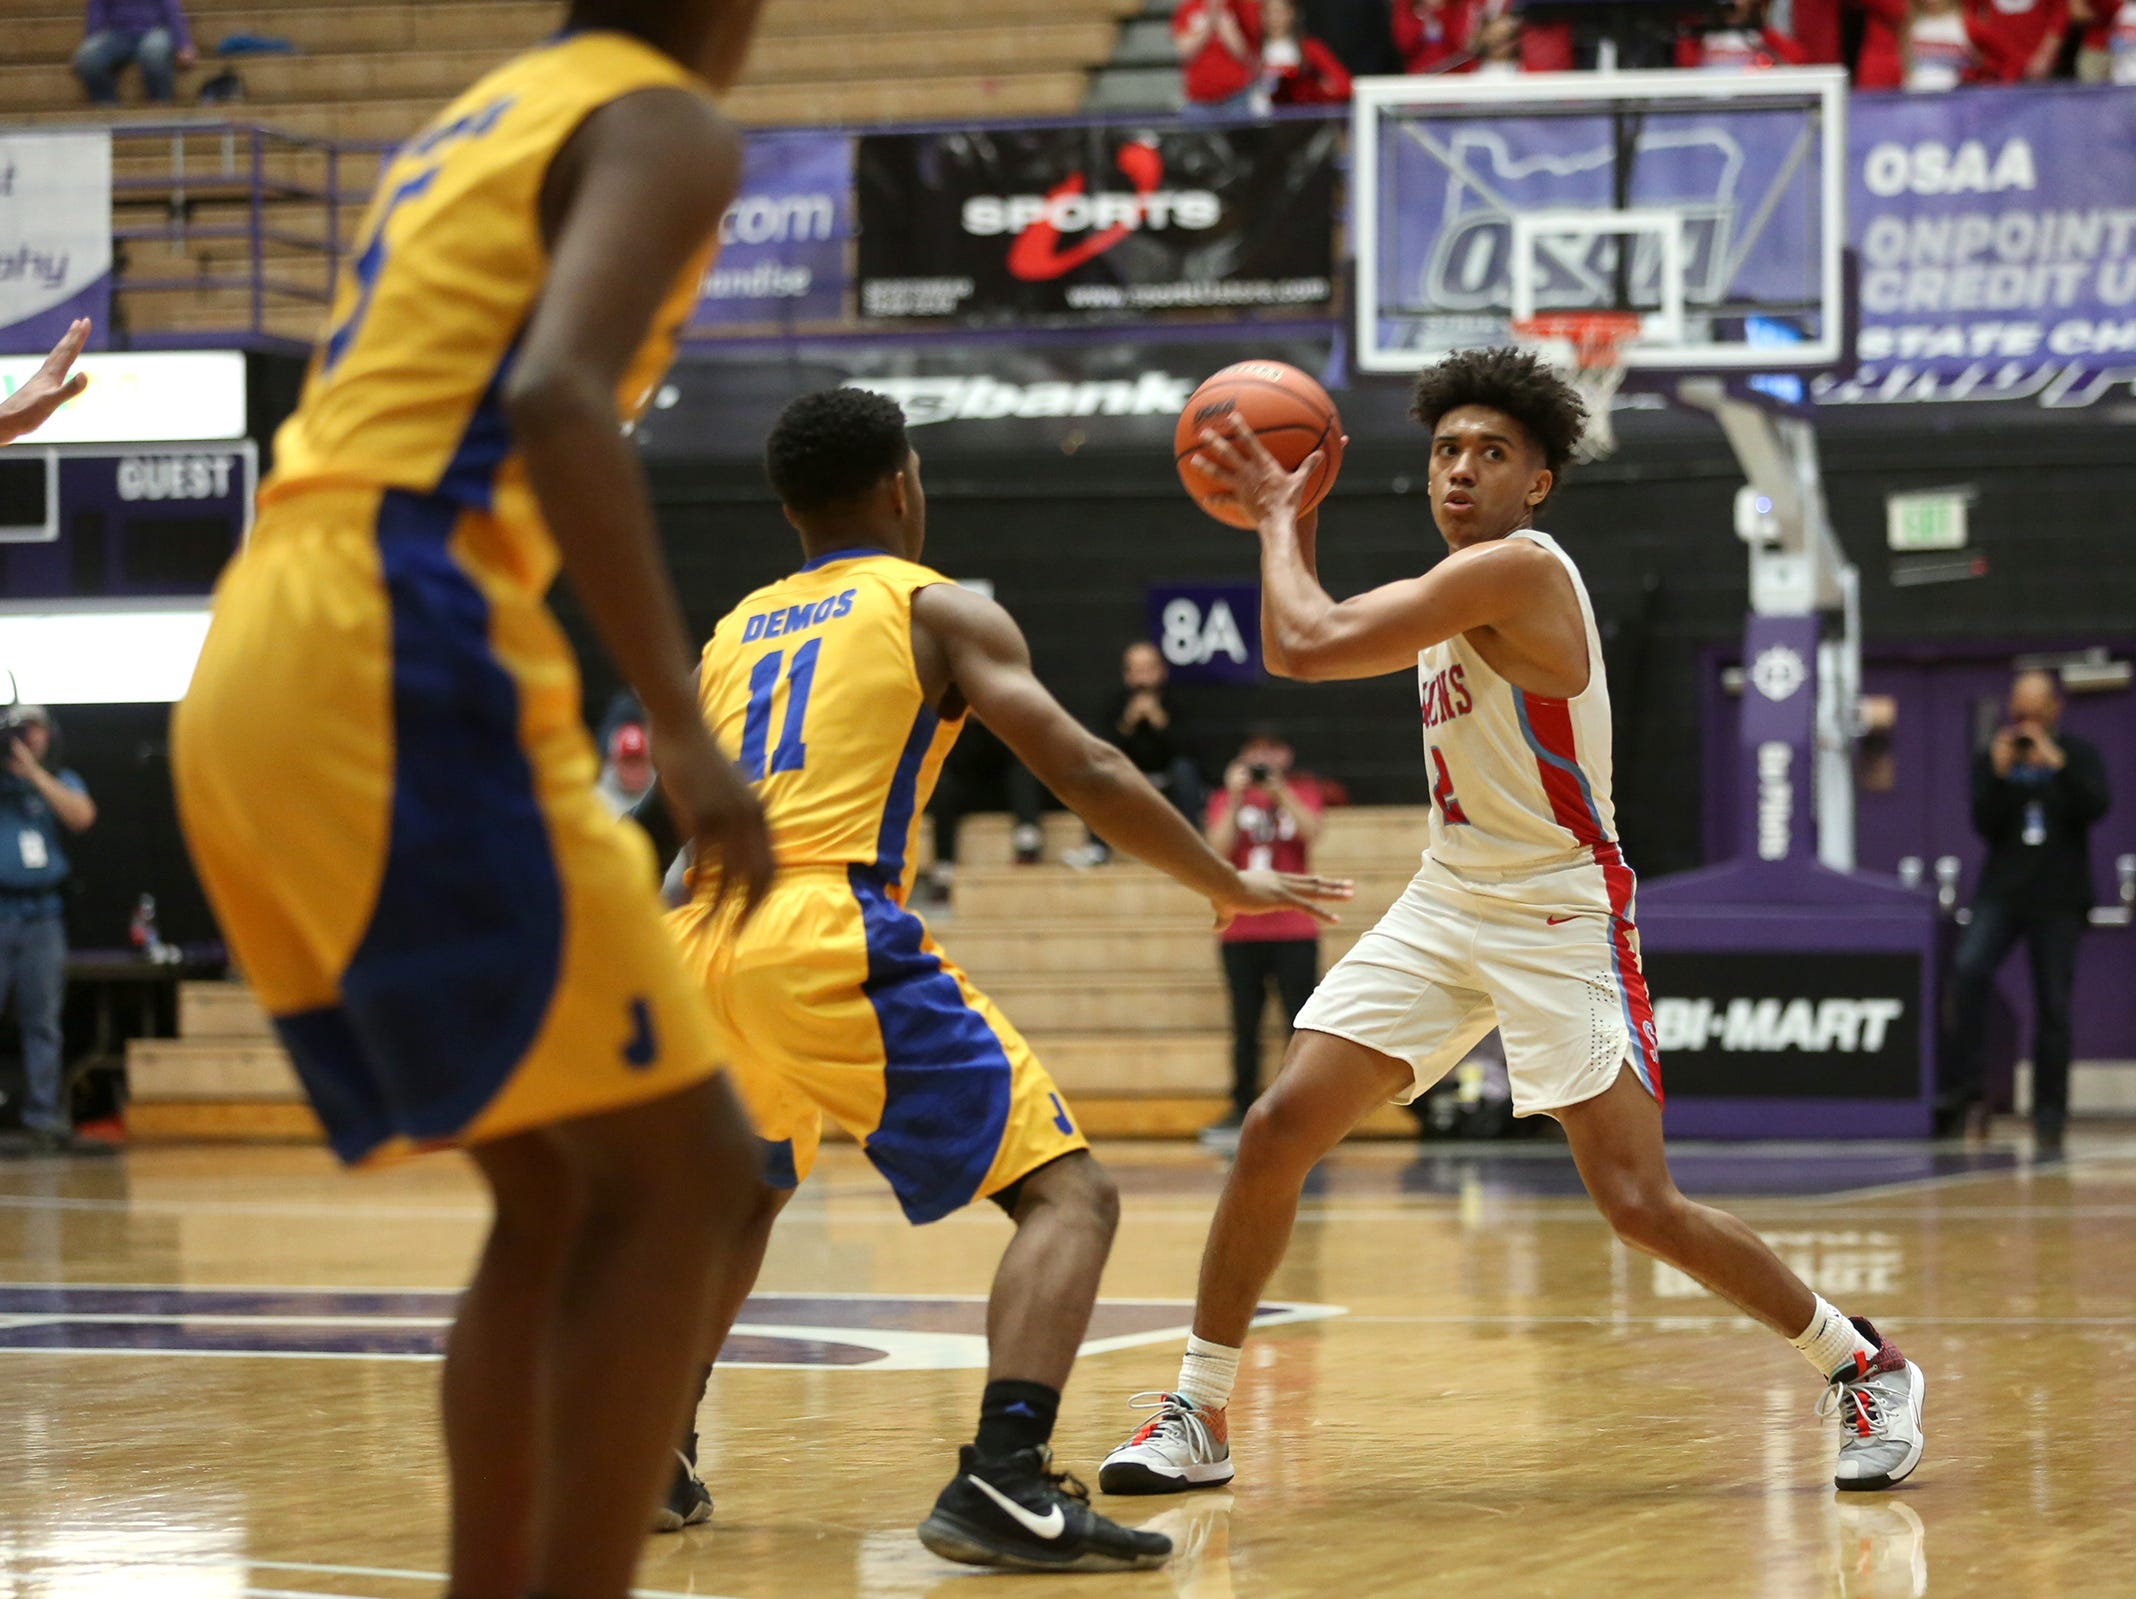 South Salem's Jaden Nielsen-Skinner (2) looks to make a pass during the South Salem vs. Jefferson boys basketball OSAA 6A semifinal game at Chiles Center in Portland on Friday, March 8, 2019.